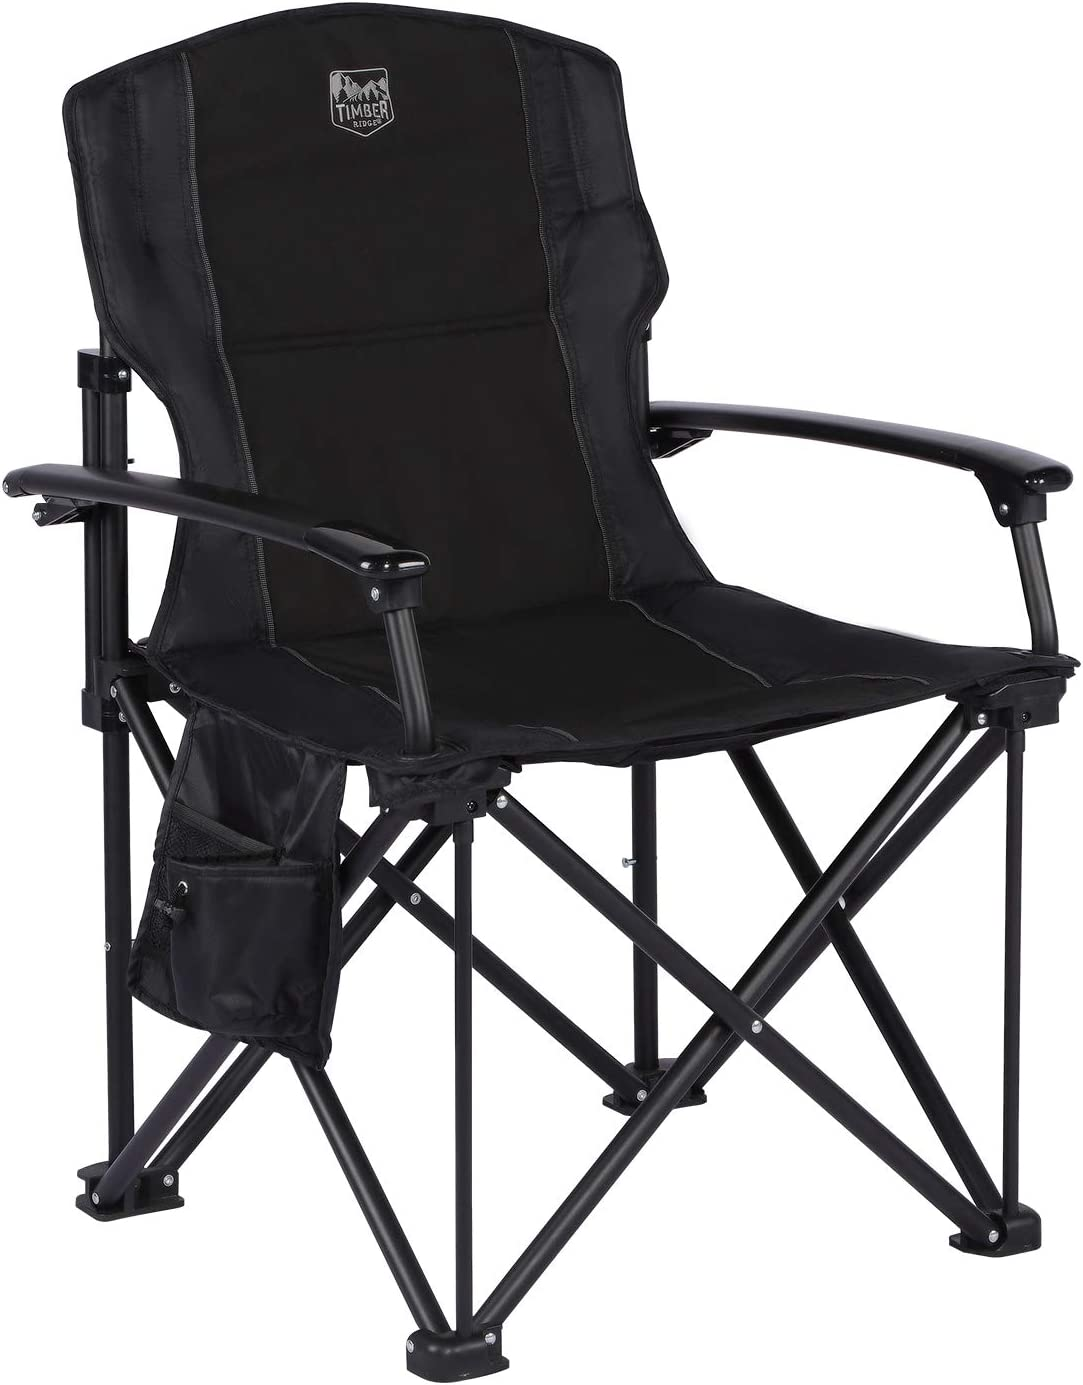 TIMBER RIDGE Lightweight Portable Outdoor Folding Camping Quad Chair with Hard Armrest-Support Capacity 300 lbs.